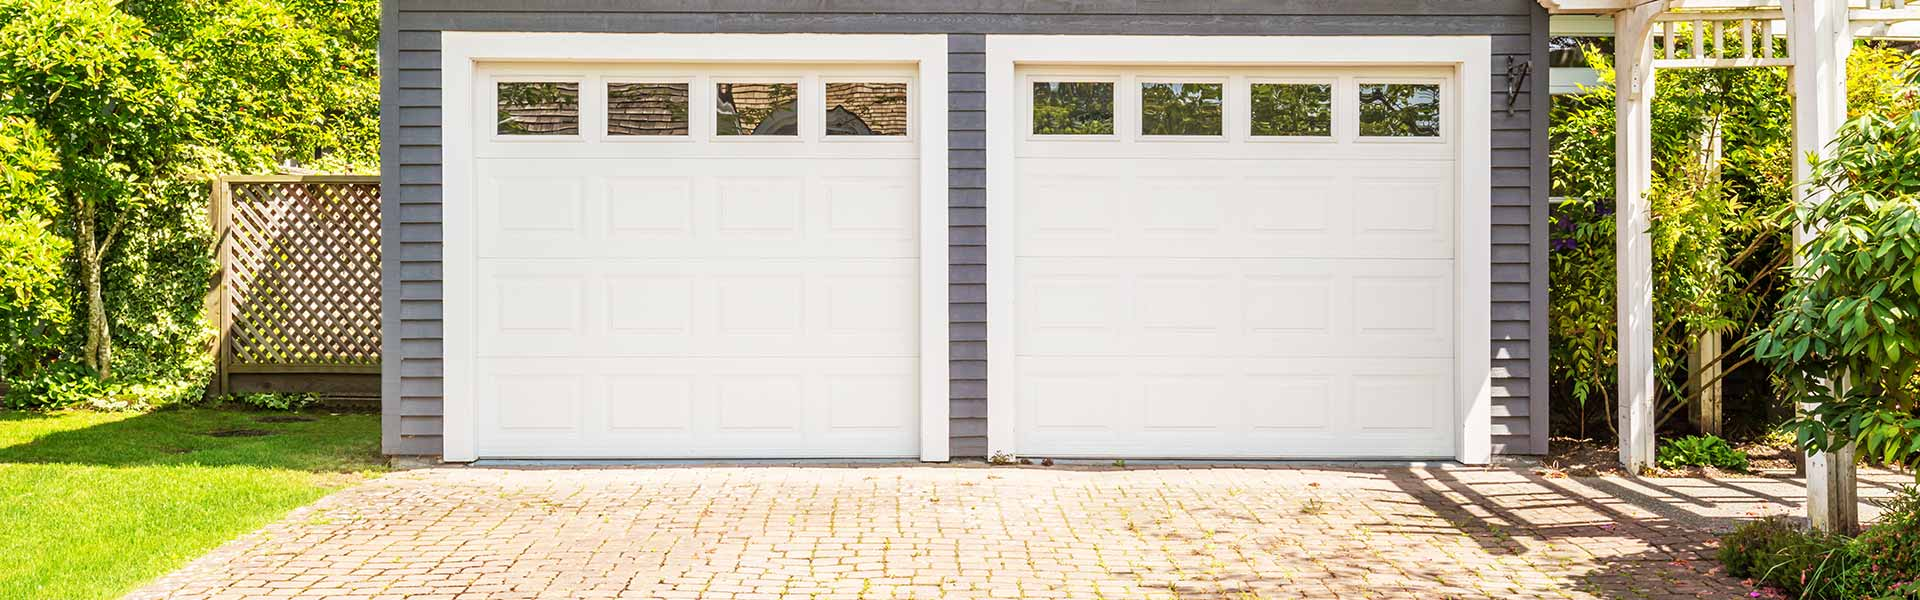 Garage Door Repairs Worcester